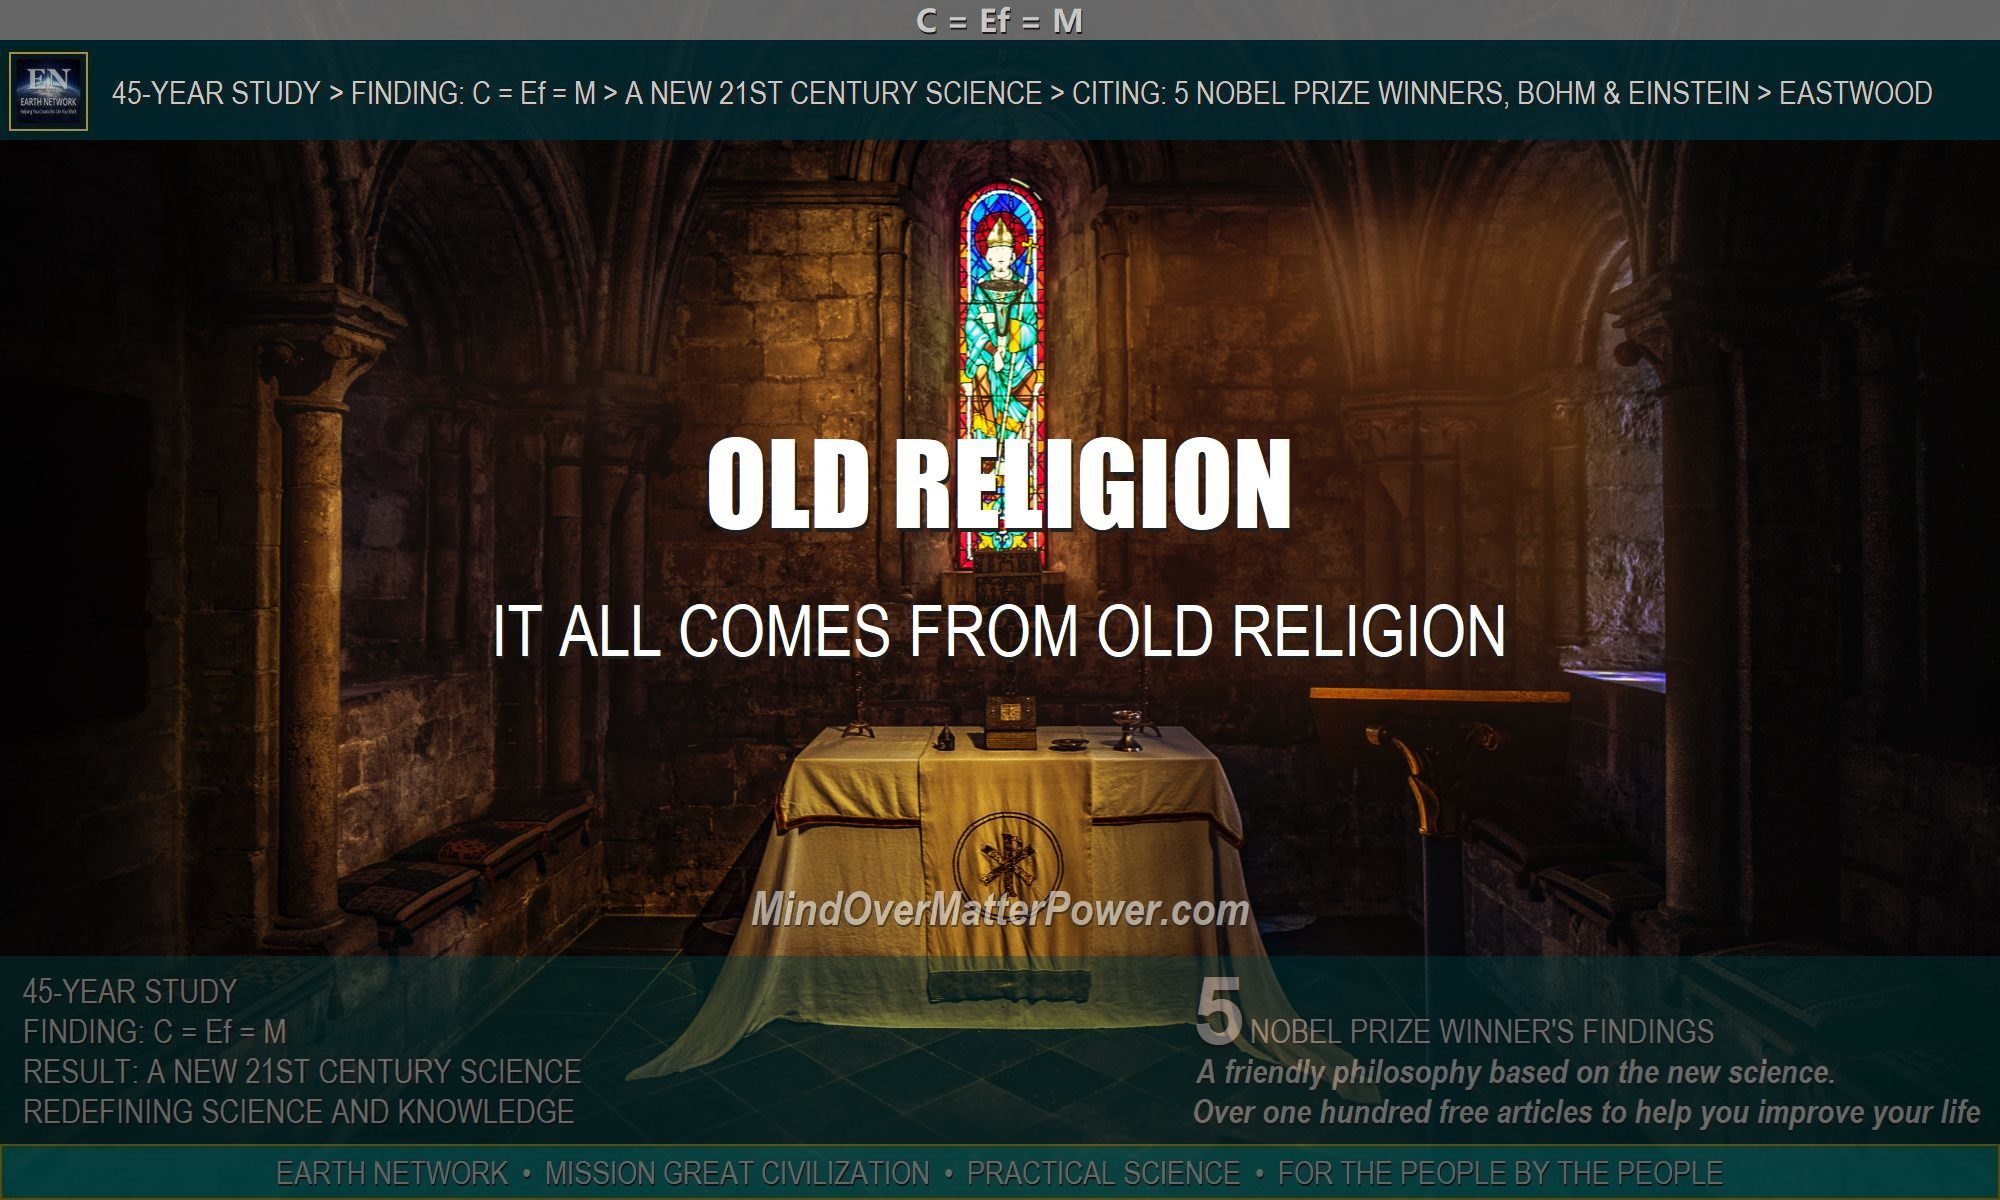 Church depicts the origin of modern thought in old religion.